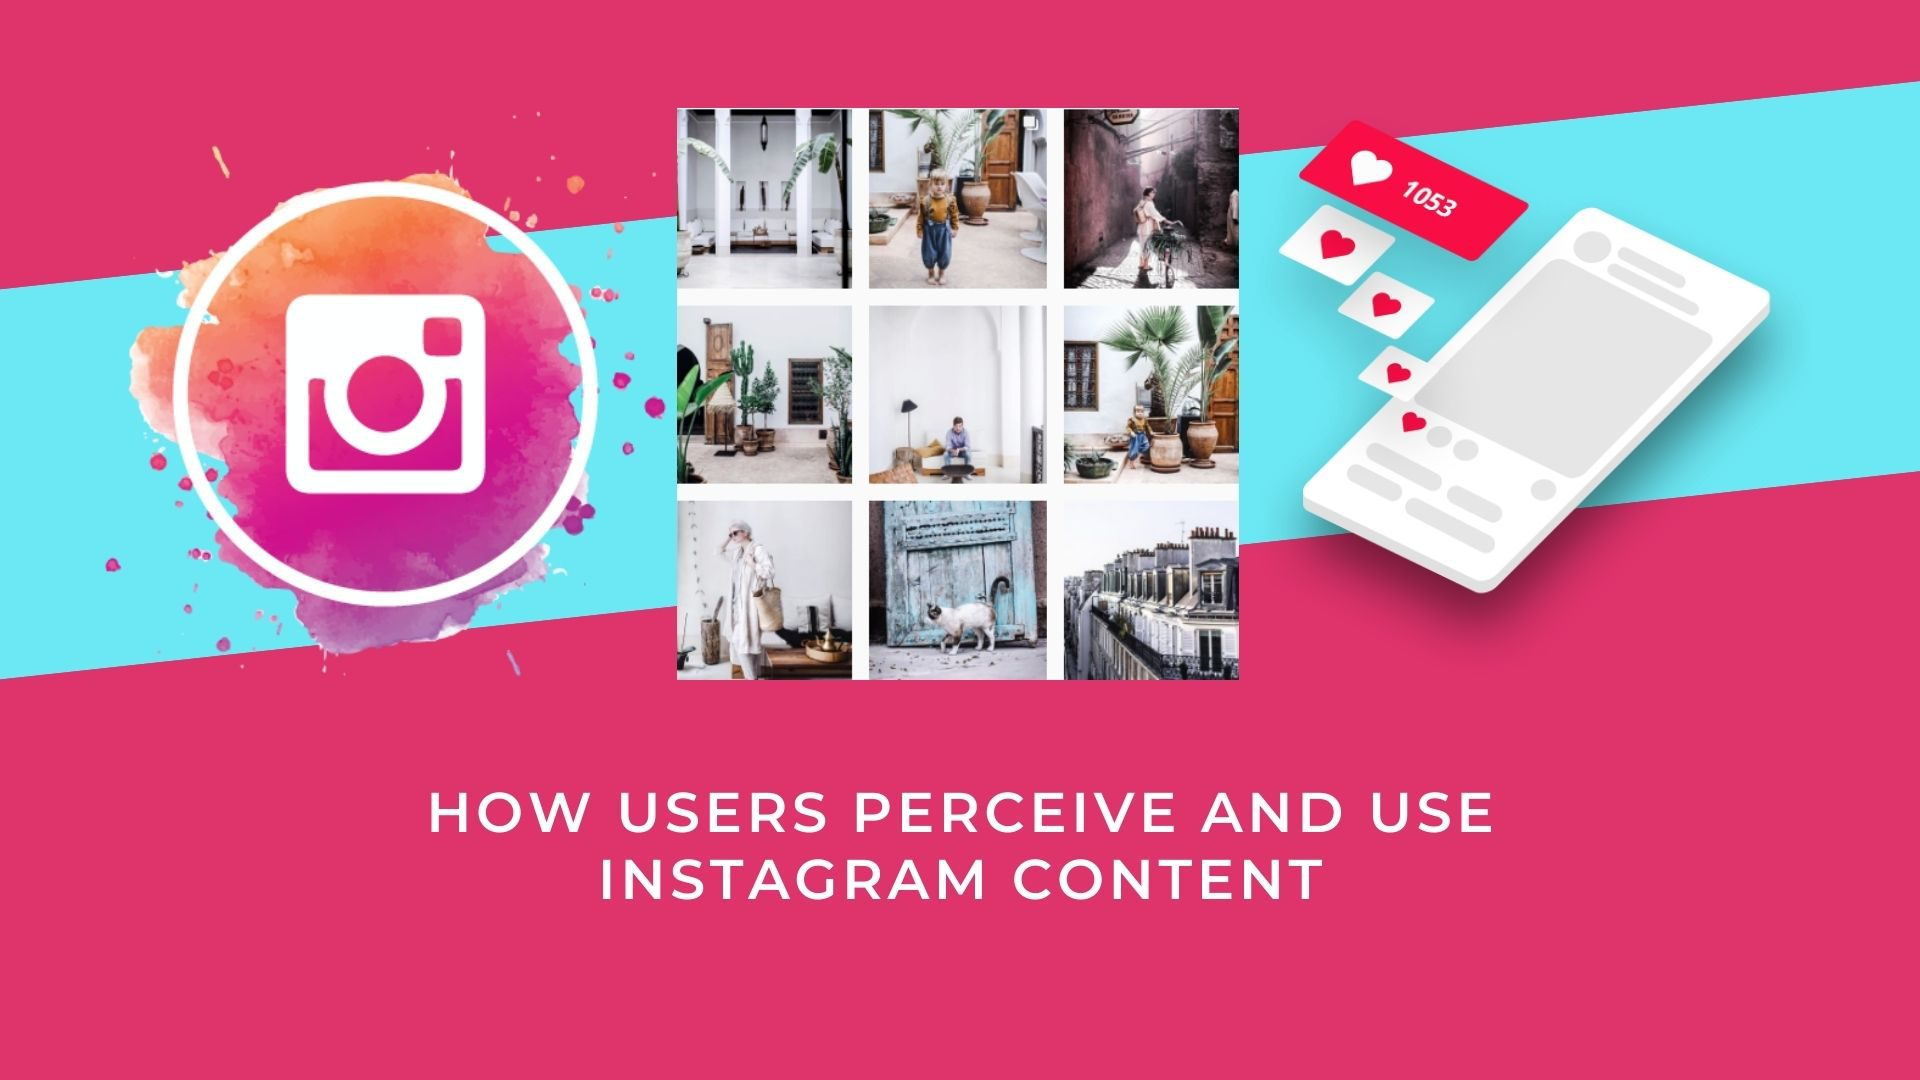 How Users Perceive and Use Instagram Content